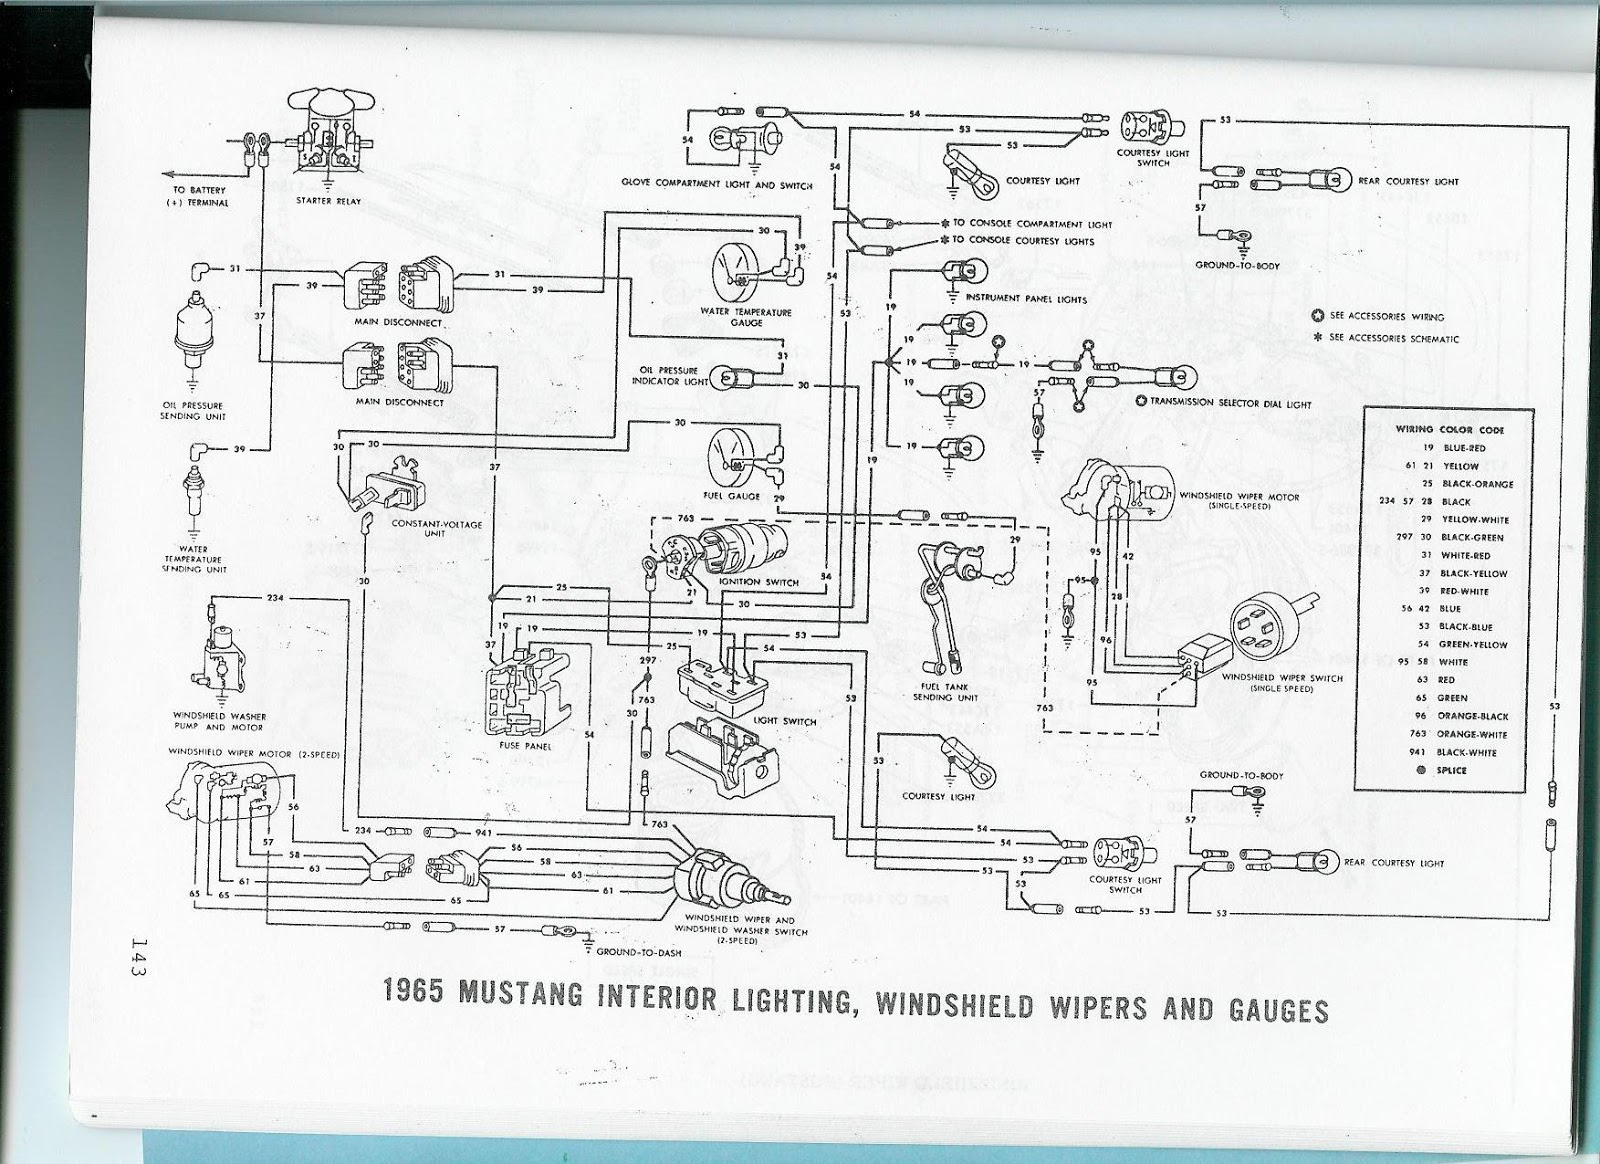 the care and feeding of ponies 1965 mustang wiring diagrams rh thecareandfeedingofponies blogspot com 1967 Mustang Instrument Panel Wiring Diagram 1965 Mustang Dash Wiring Diagram